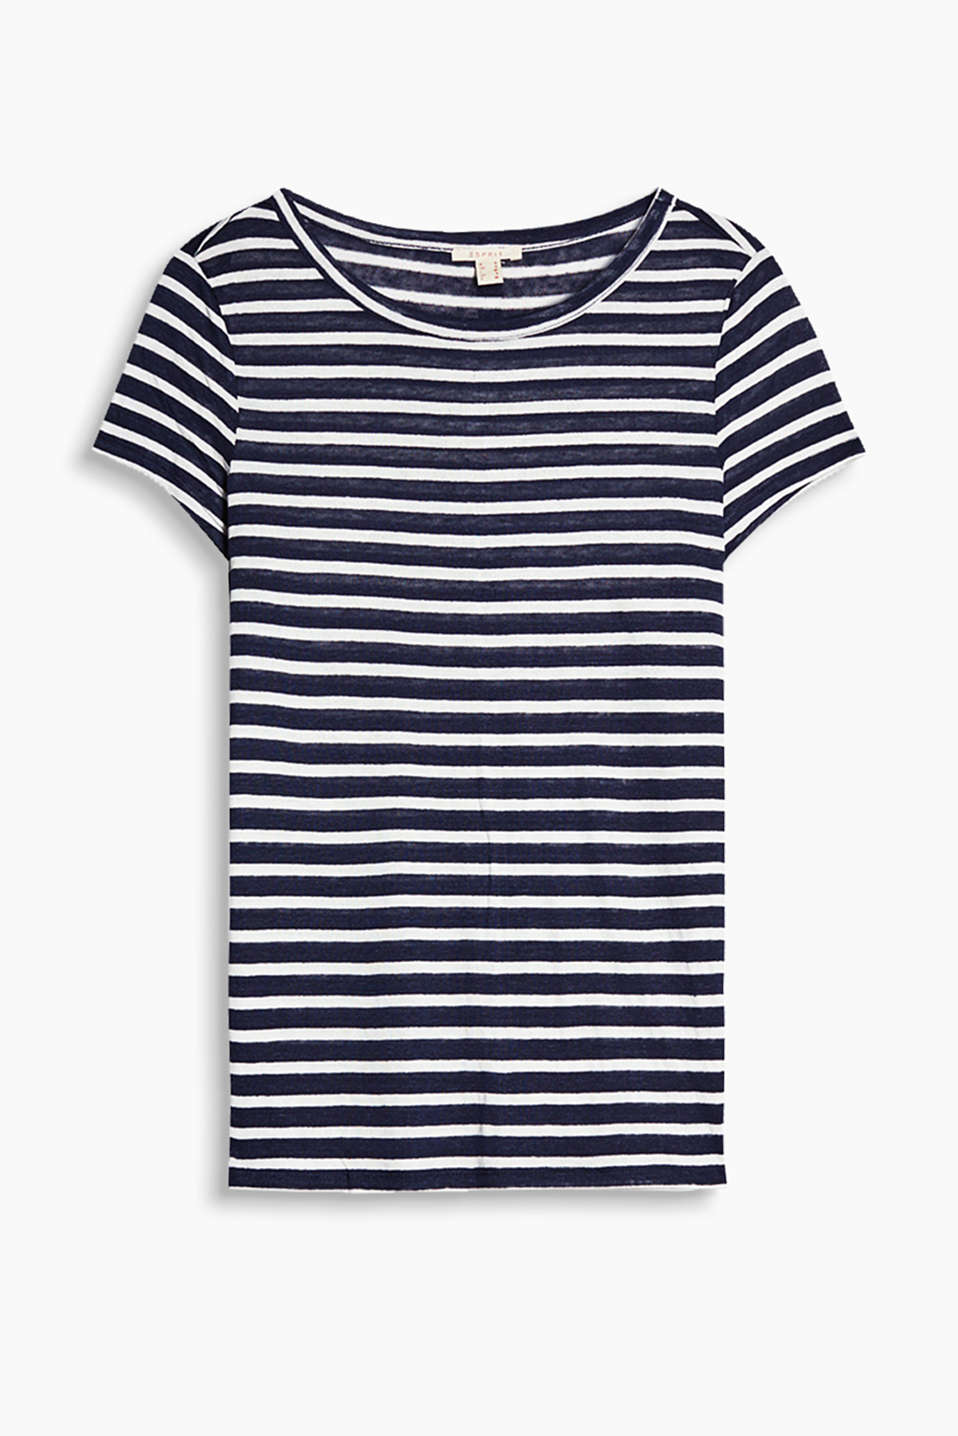 Loose striped T-shirt in a cool linen blend with a decorative button placket on the back